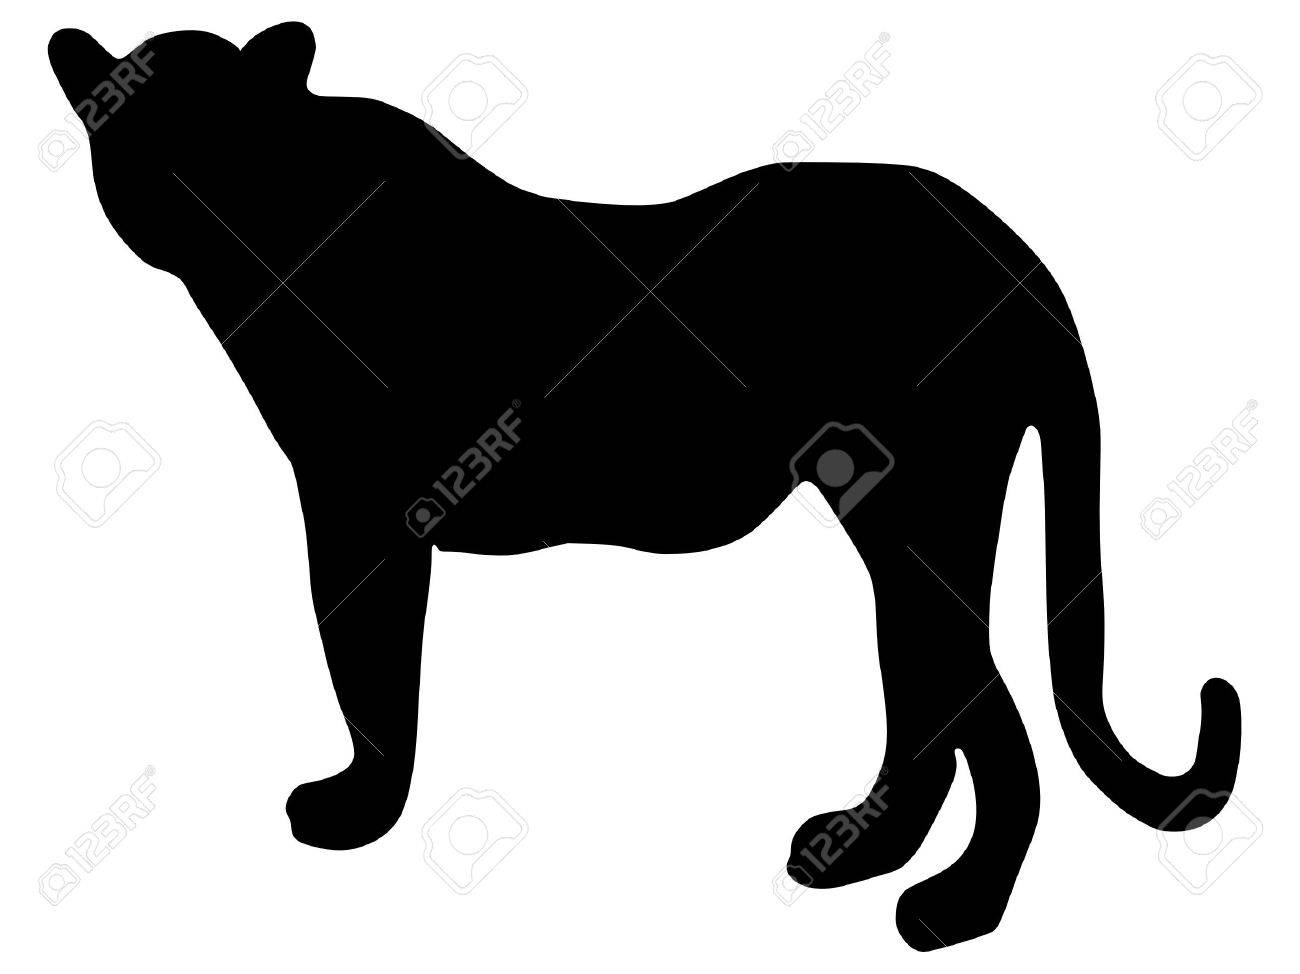 Set with africa animals black white stock vector 169 insima - Leopardo Fondo Blanco Una Silueta De Color Negro De La Serie De Animales De